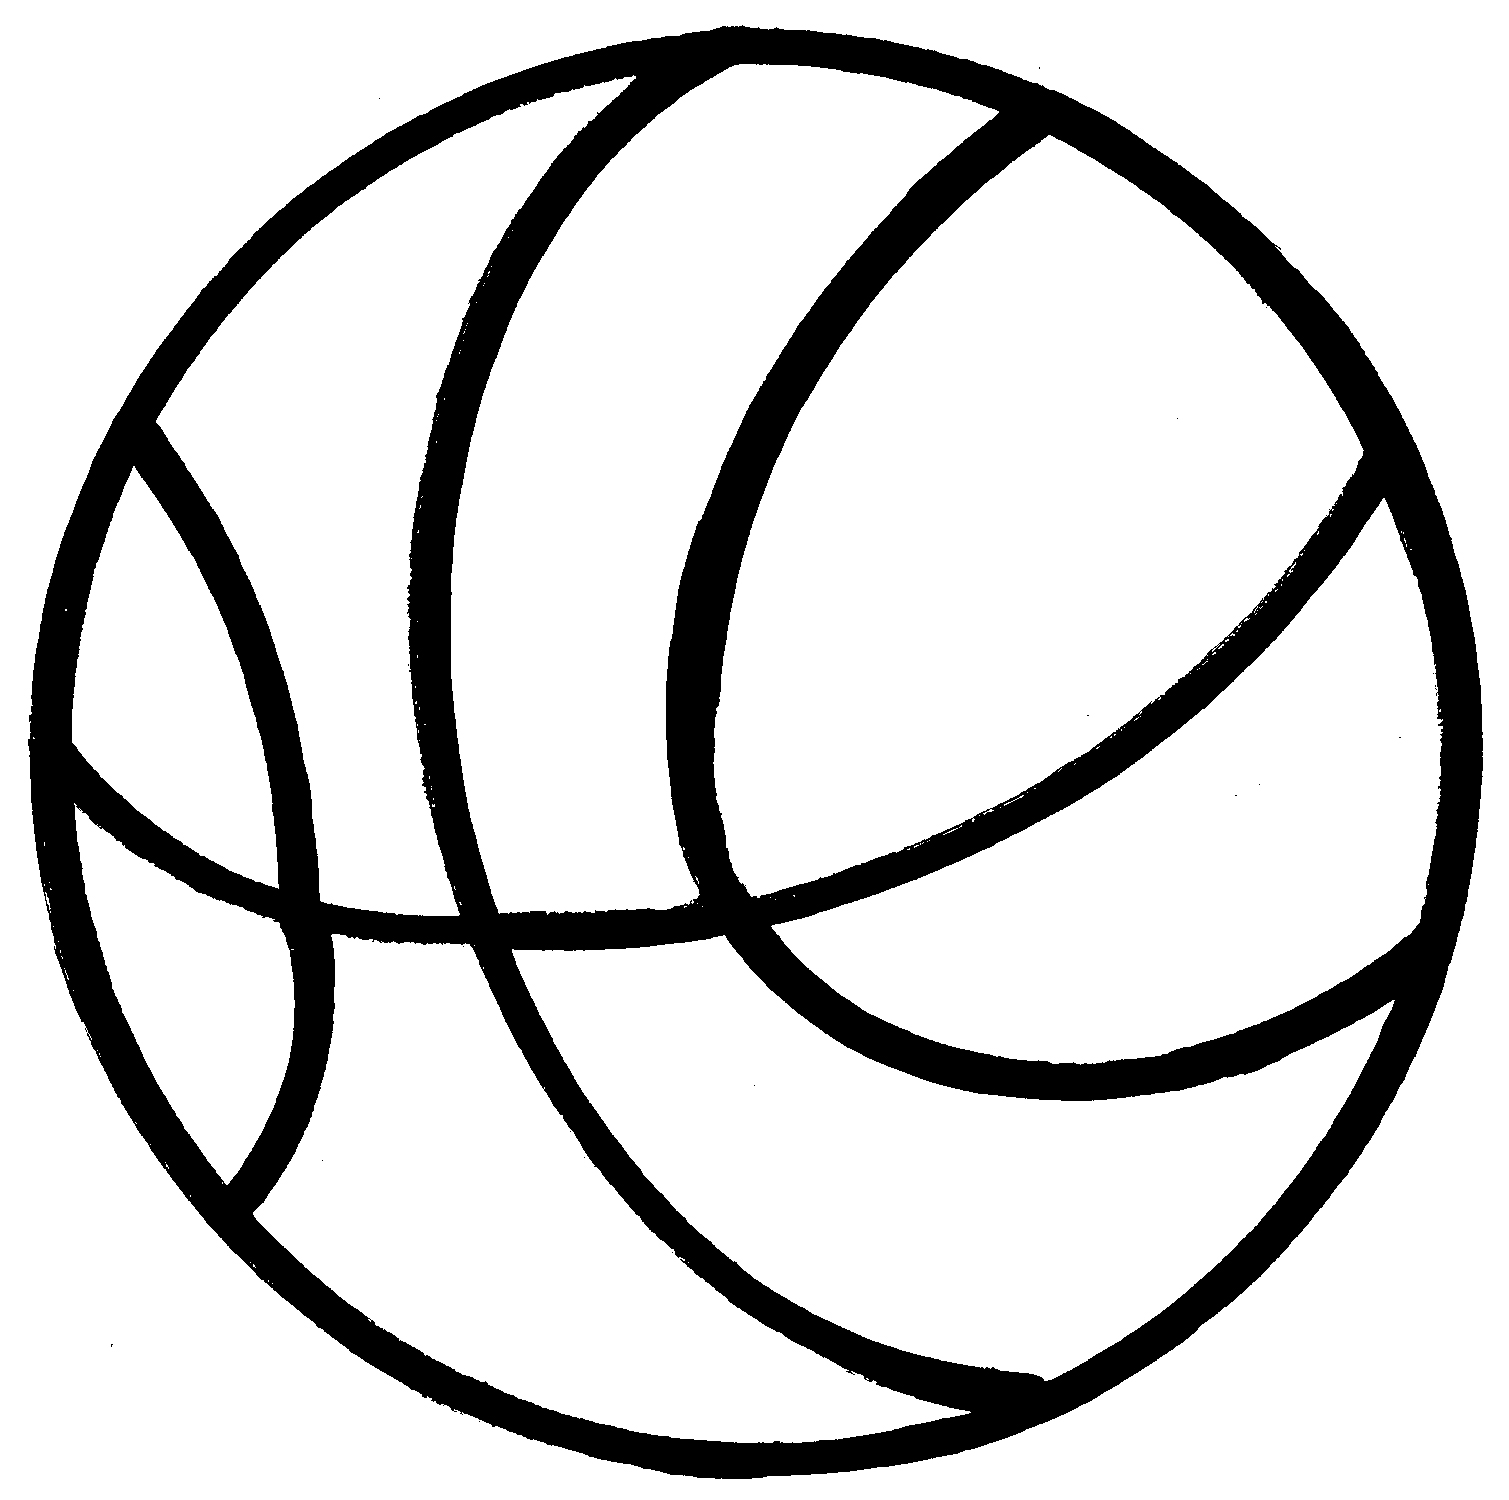 1509x1500 Basketball Clip Art